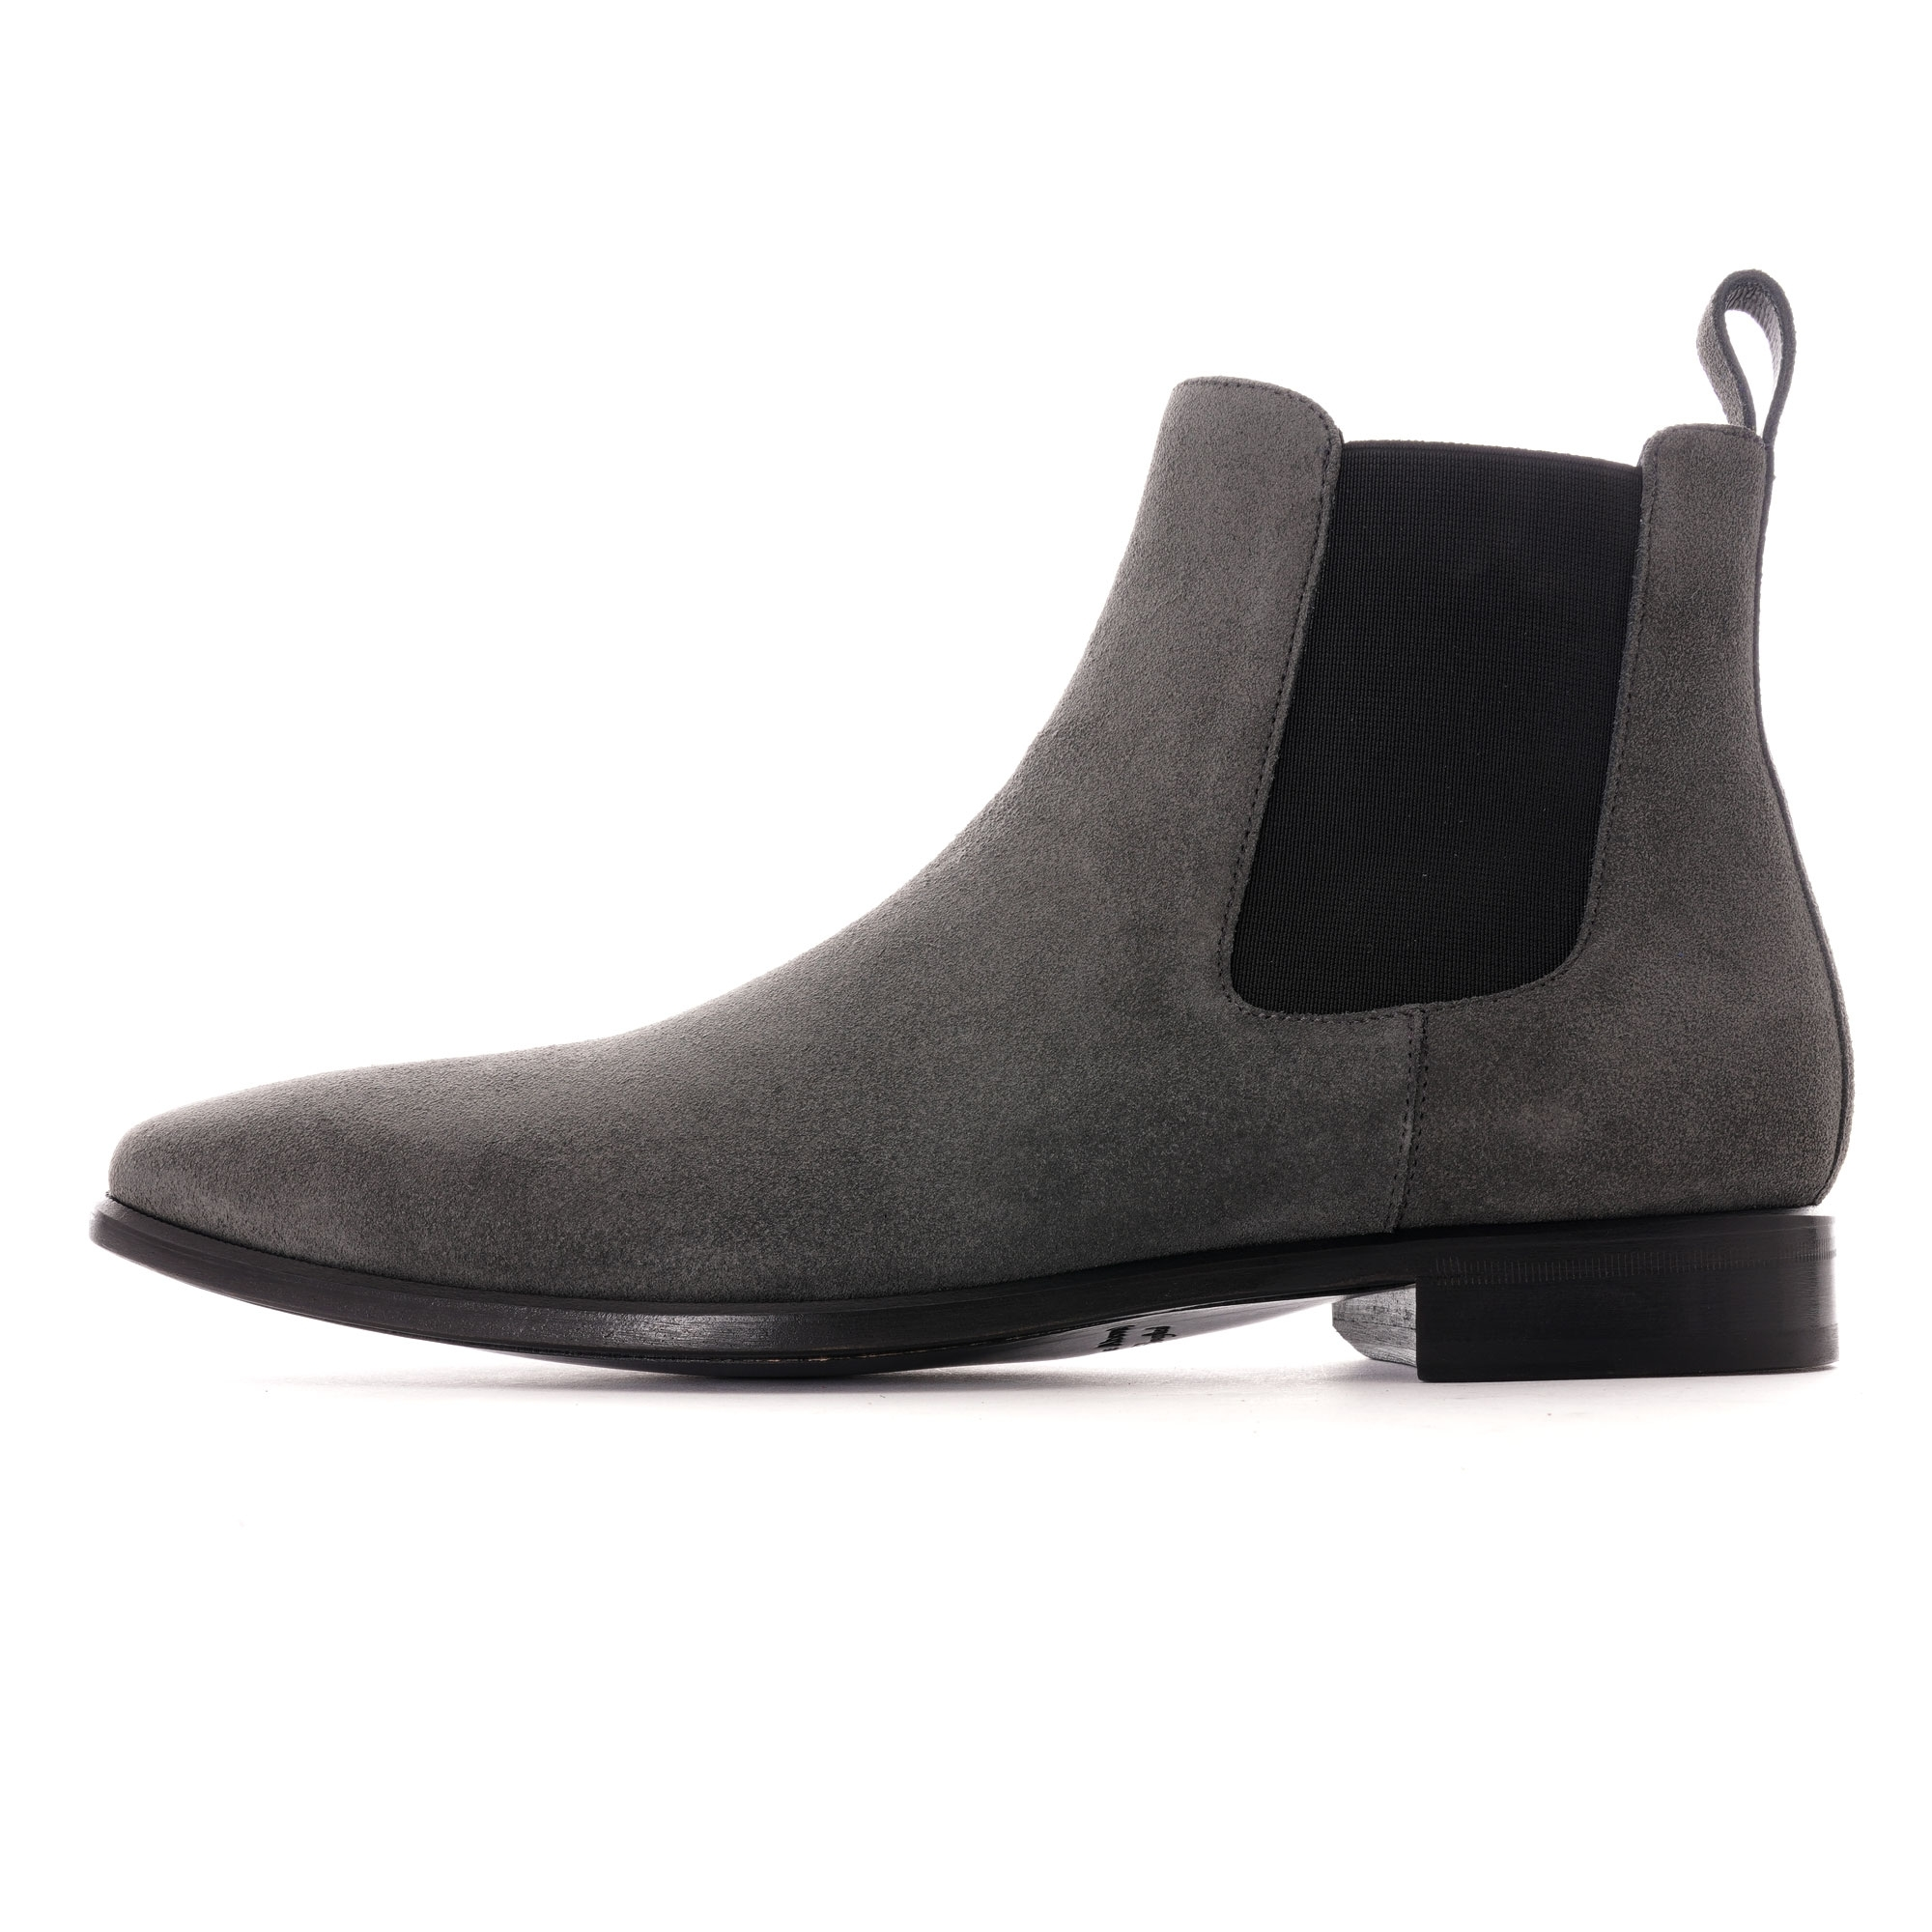 None Of The Above Chelsea Boots | Grey